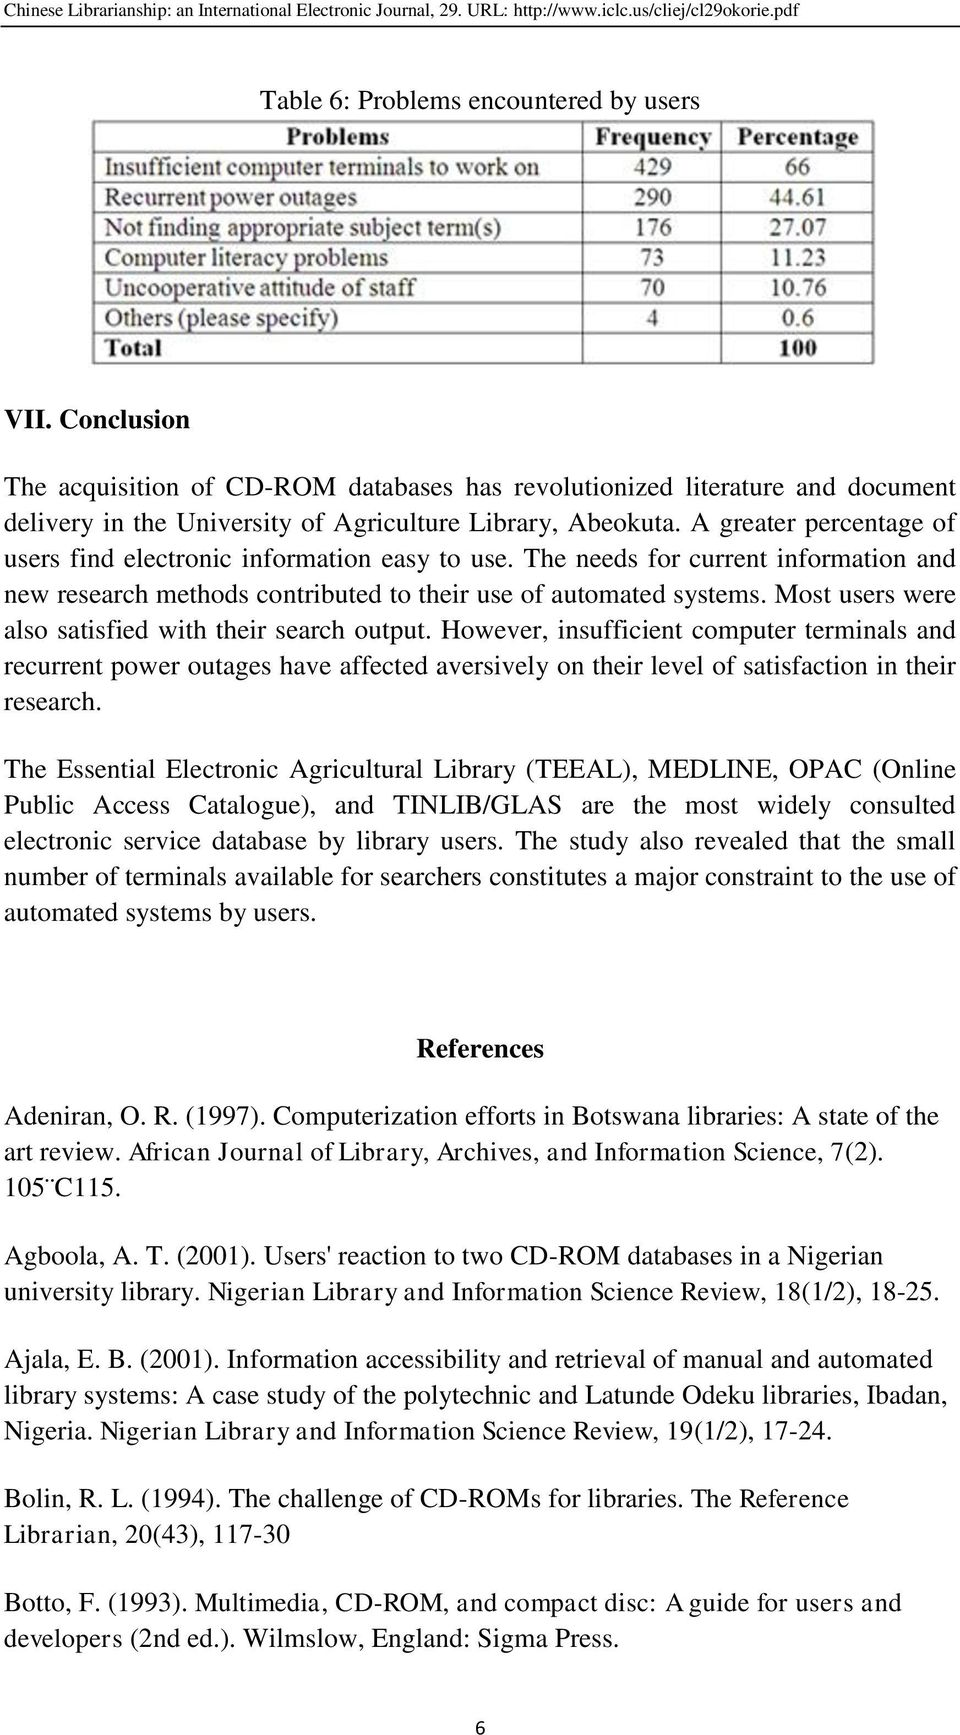 Utilization of Automated Electronic Information Services: A